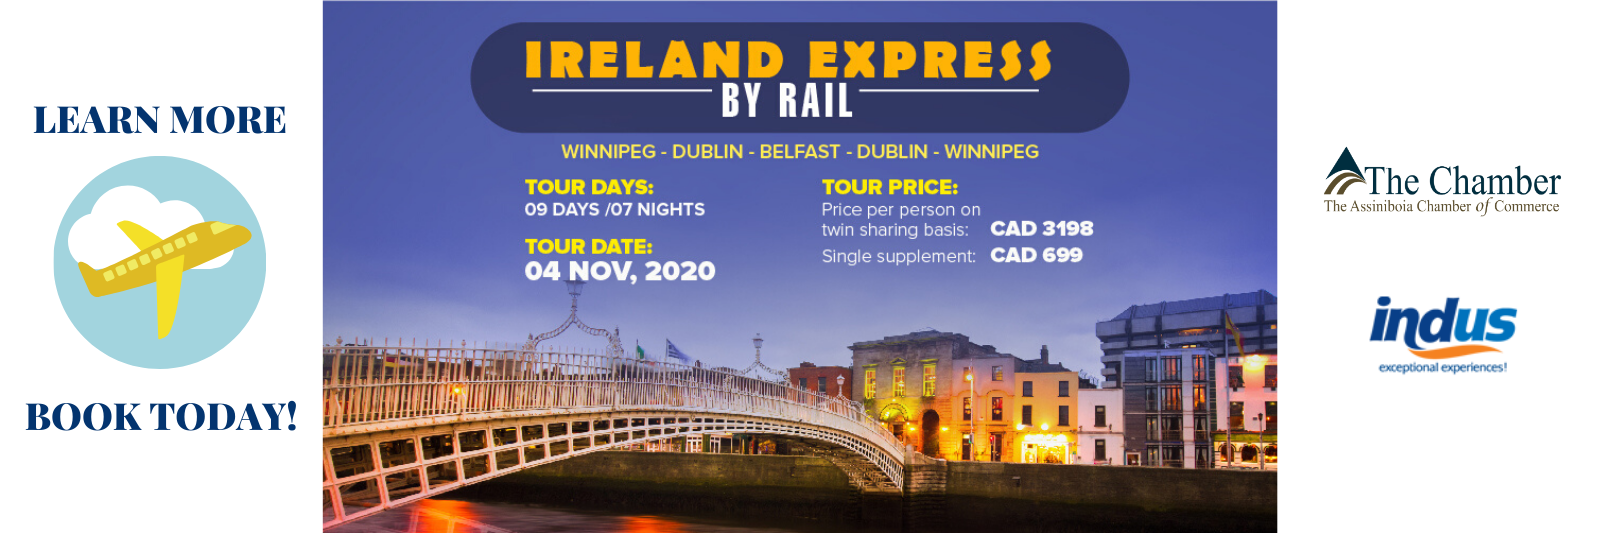 WebsiteBanner1600x533_Ireland---January-to-March-2020.png